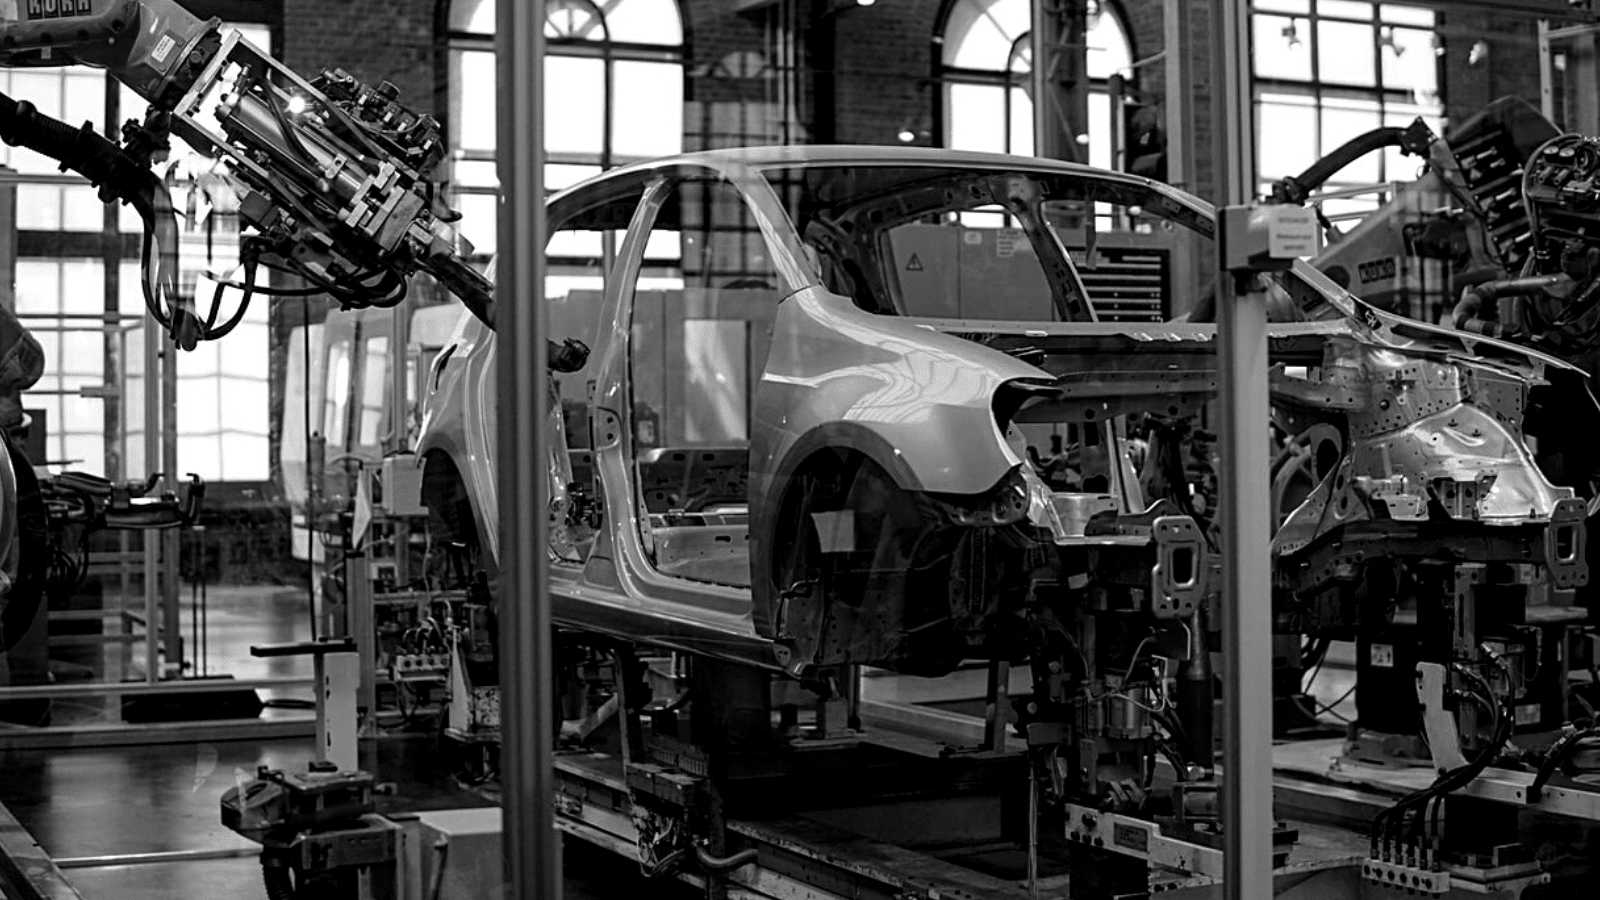 Black and white image of a car being built in a factory